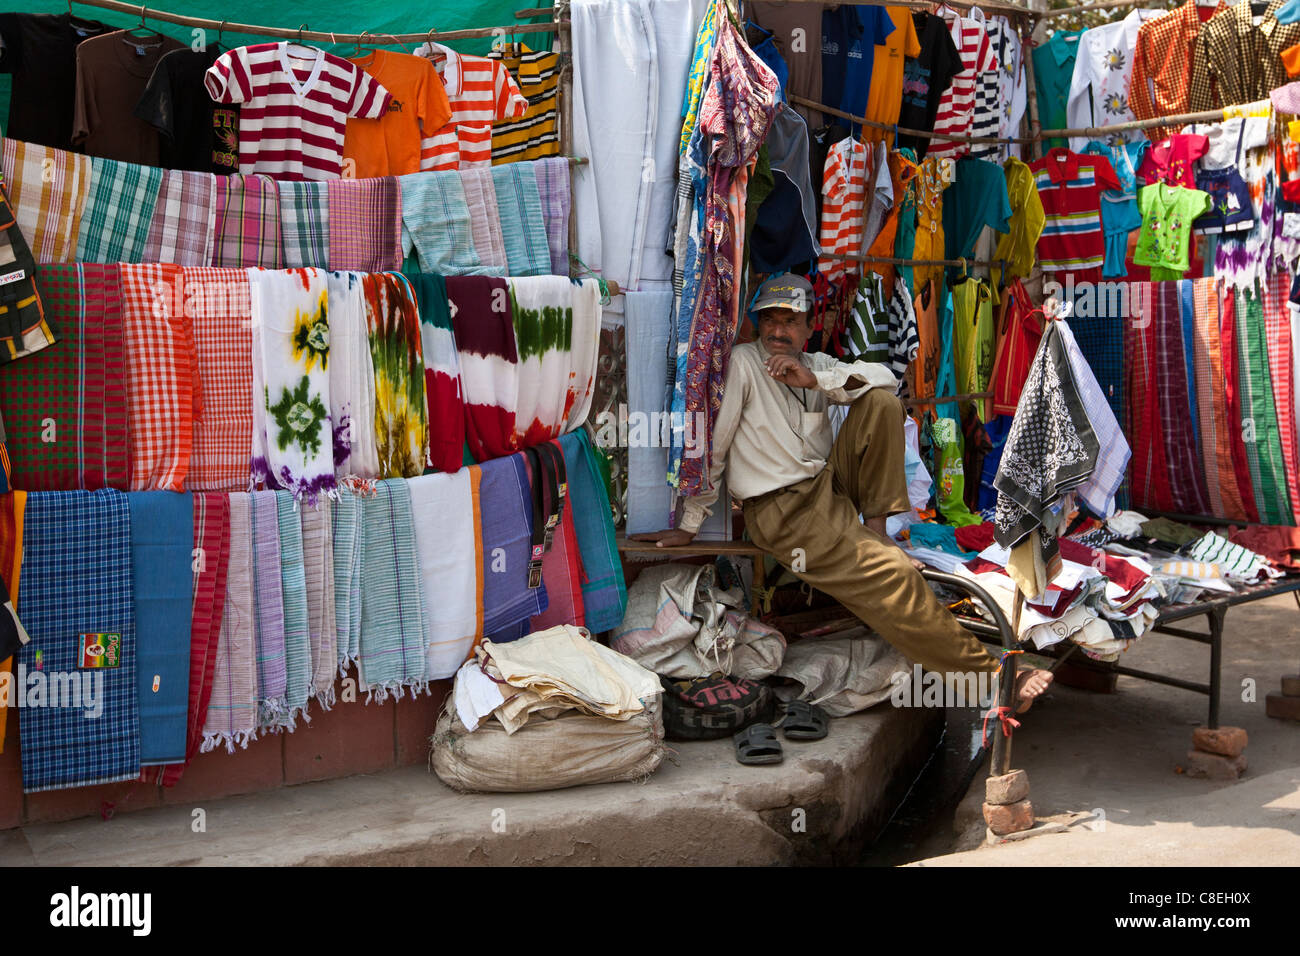 Stallholder selling clothes and sari fabrics and other textiles at Varanasi, Northern India - Stock Image